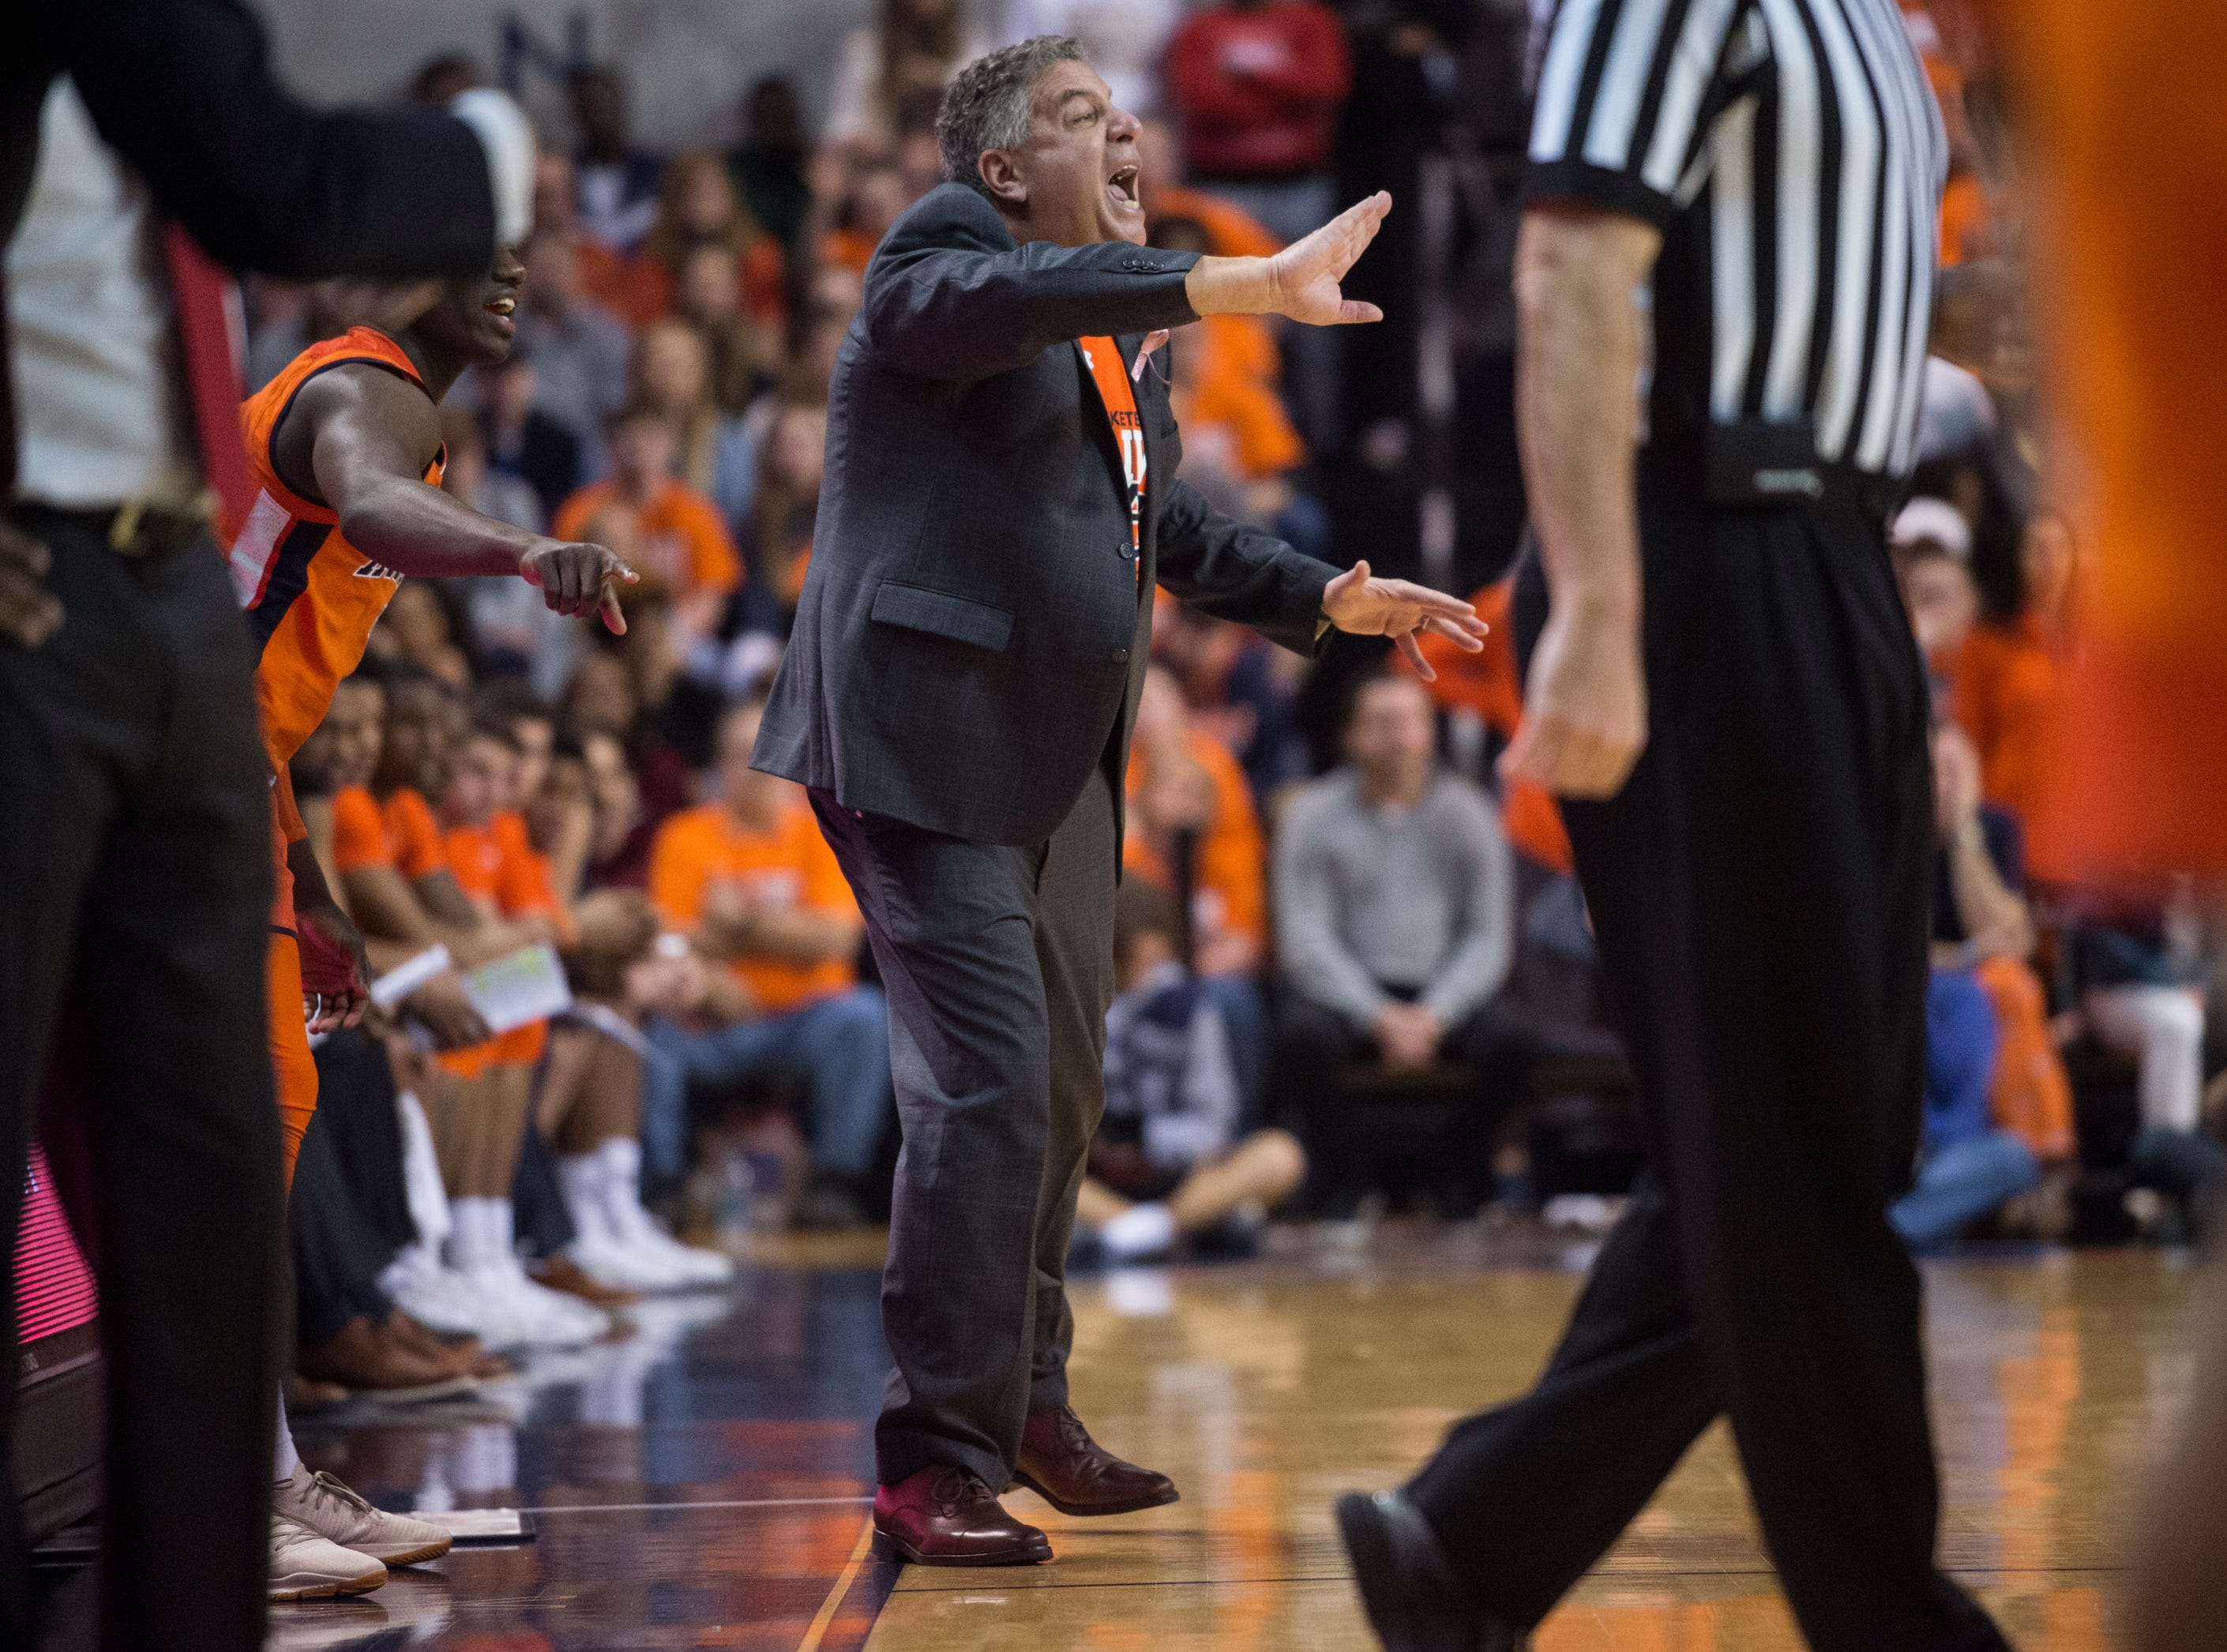 Auburn head coach Bruce Pearl yells at his team from the bench at Auburn Arena in Auburn, Ala., on Saturday, Feb. 2, 2019. Auburn leads Alabama 48-28 at halftime.